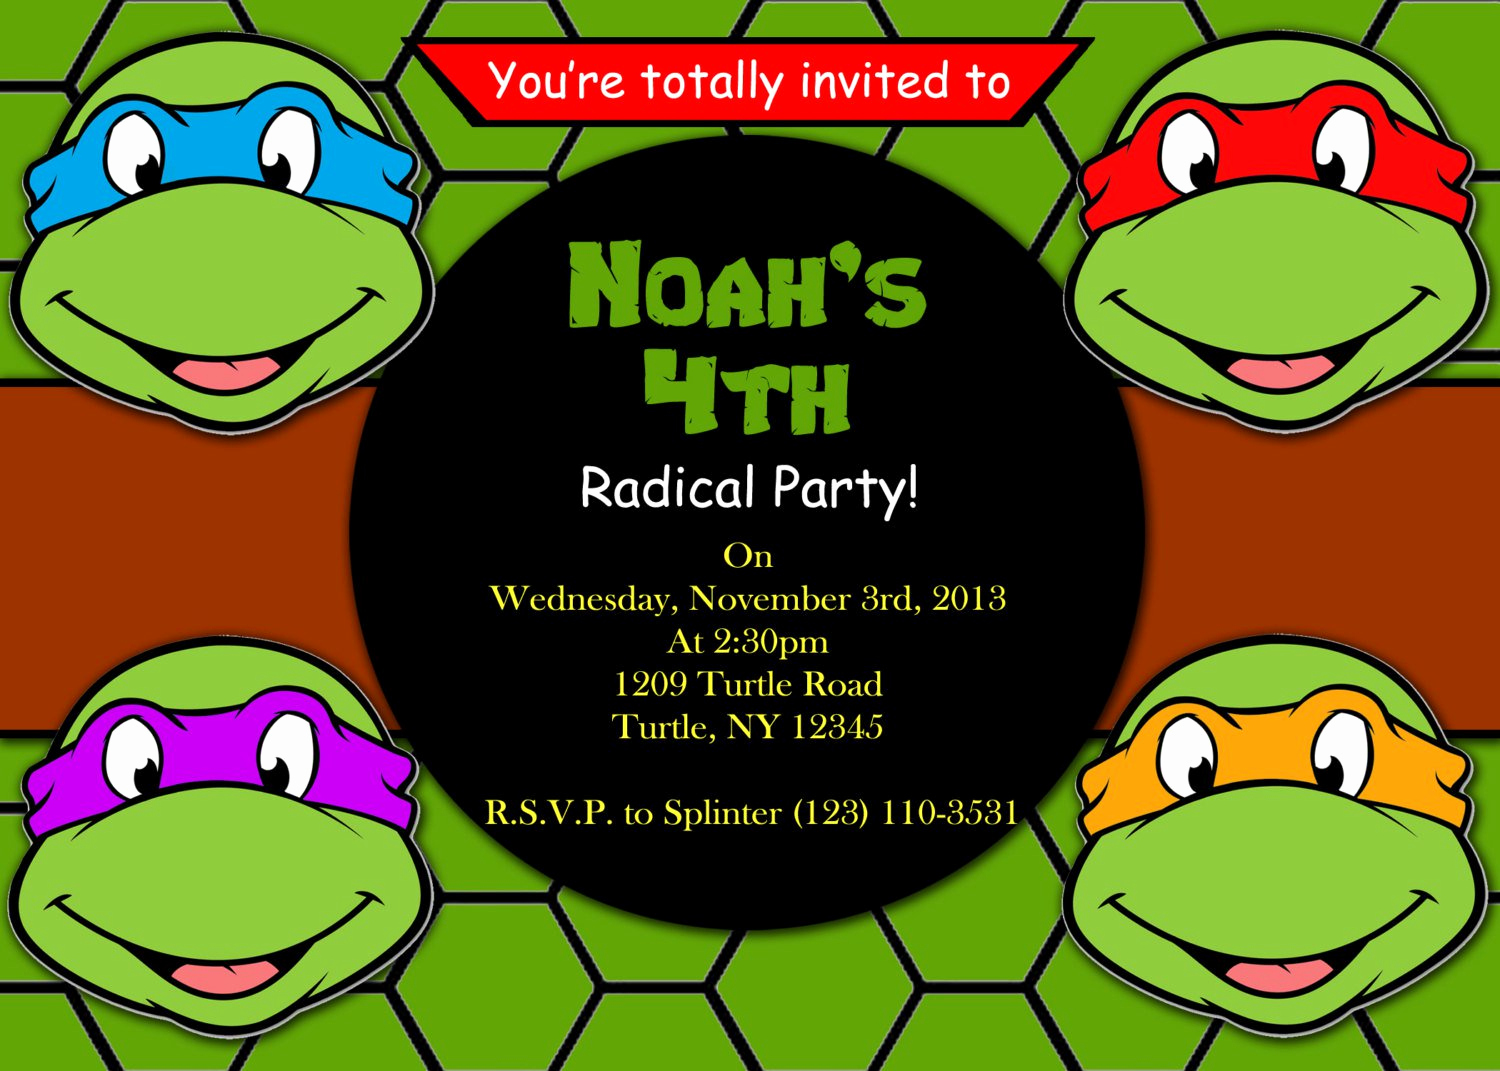 Ninja Turtle Invitation Templates Free Unique Ninja Turtle Birthday Invitations Printable Free